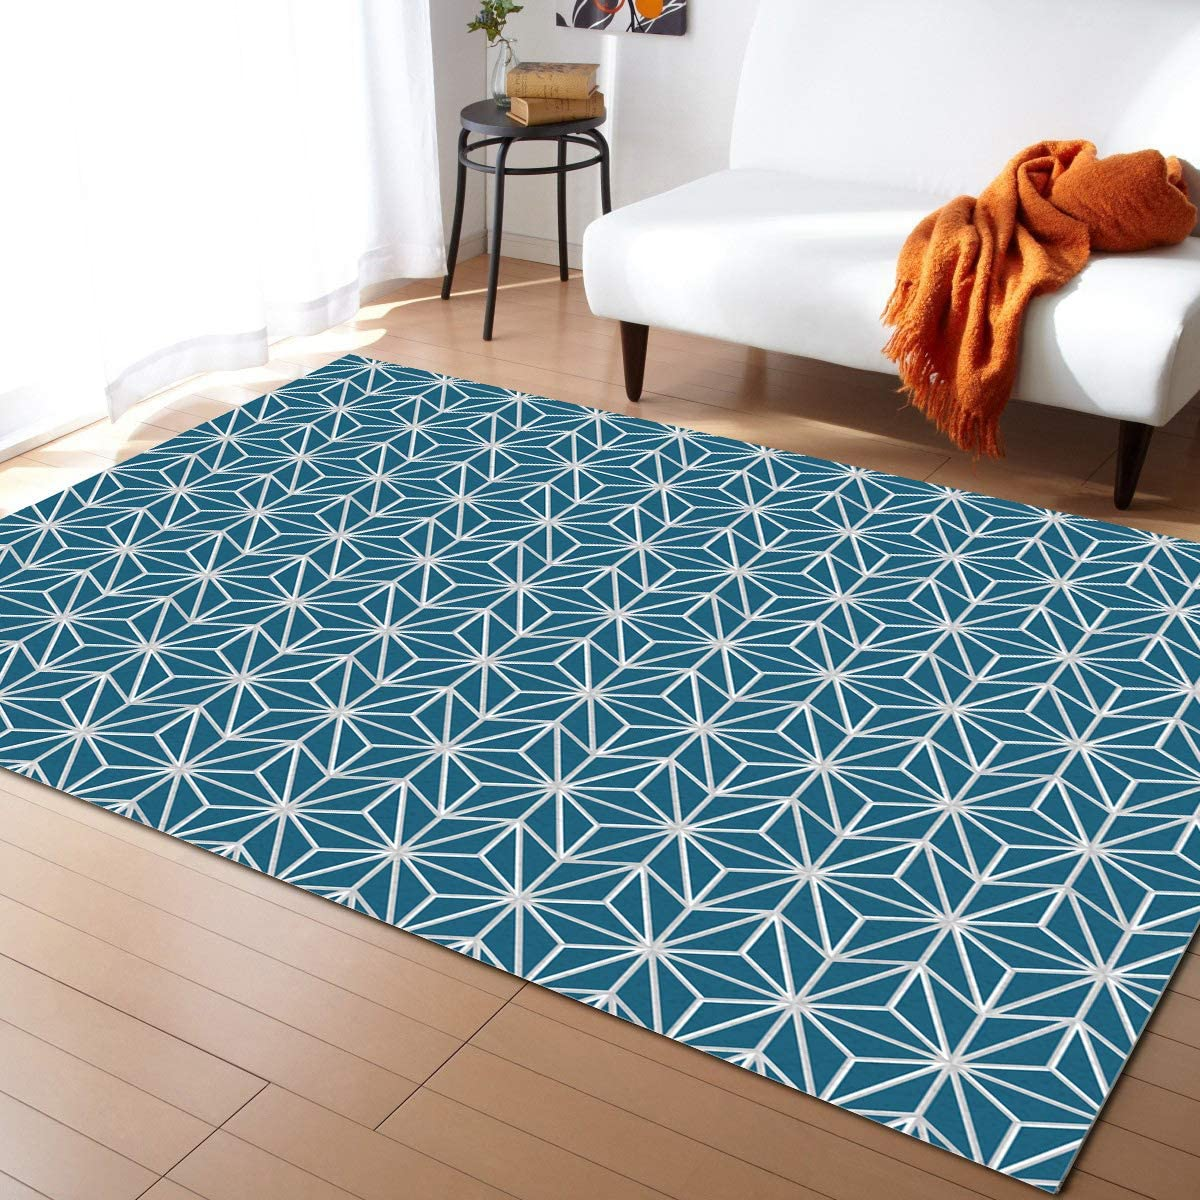 SALENEW very popular! Advancey Recommended Indoor High-Low Area Rug Green Geometric 3D 5'x8'Nordic